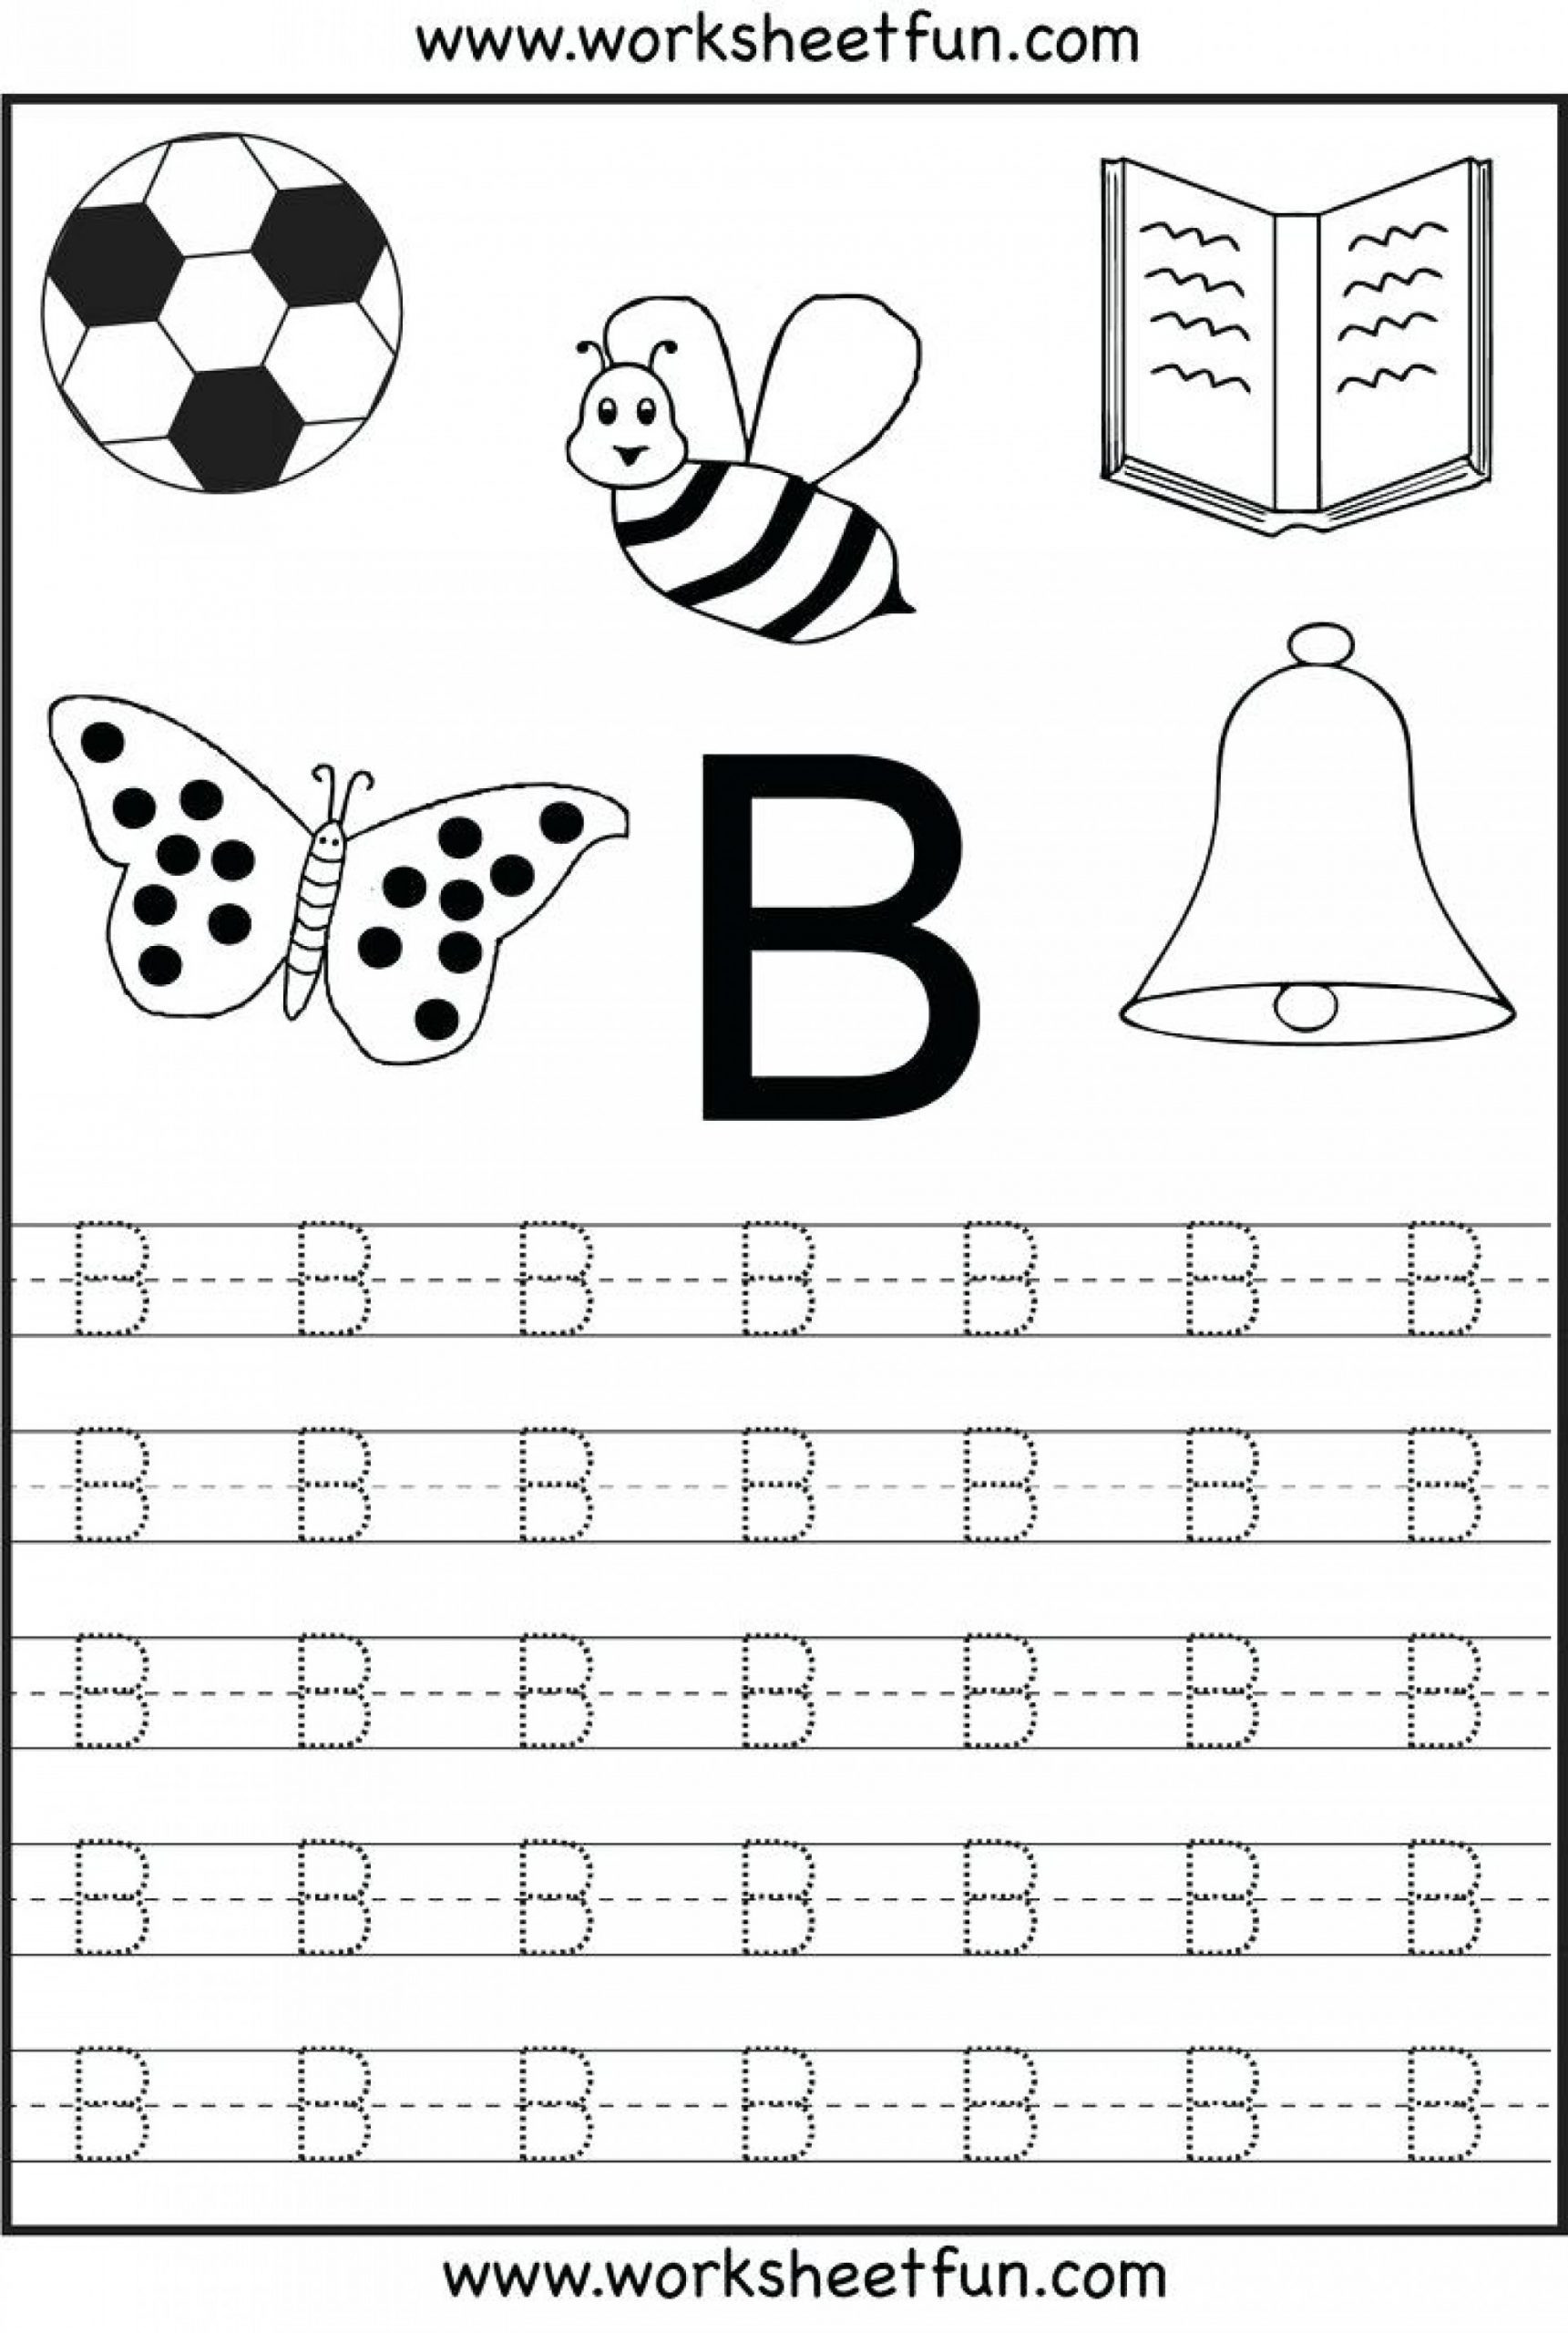 Tracing Letters and Numbers Worksheet Preschool Tracing Letters Freetable Worksheets for